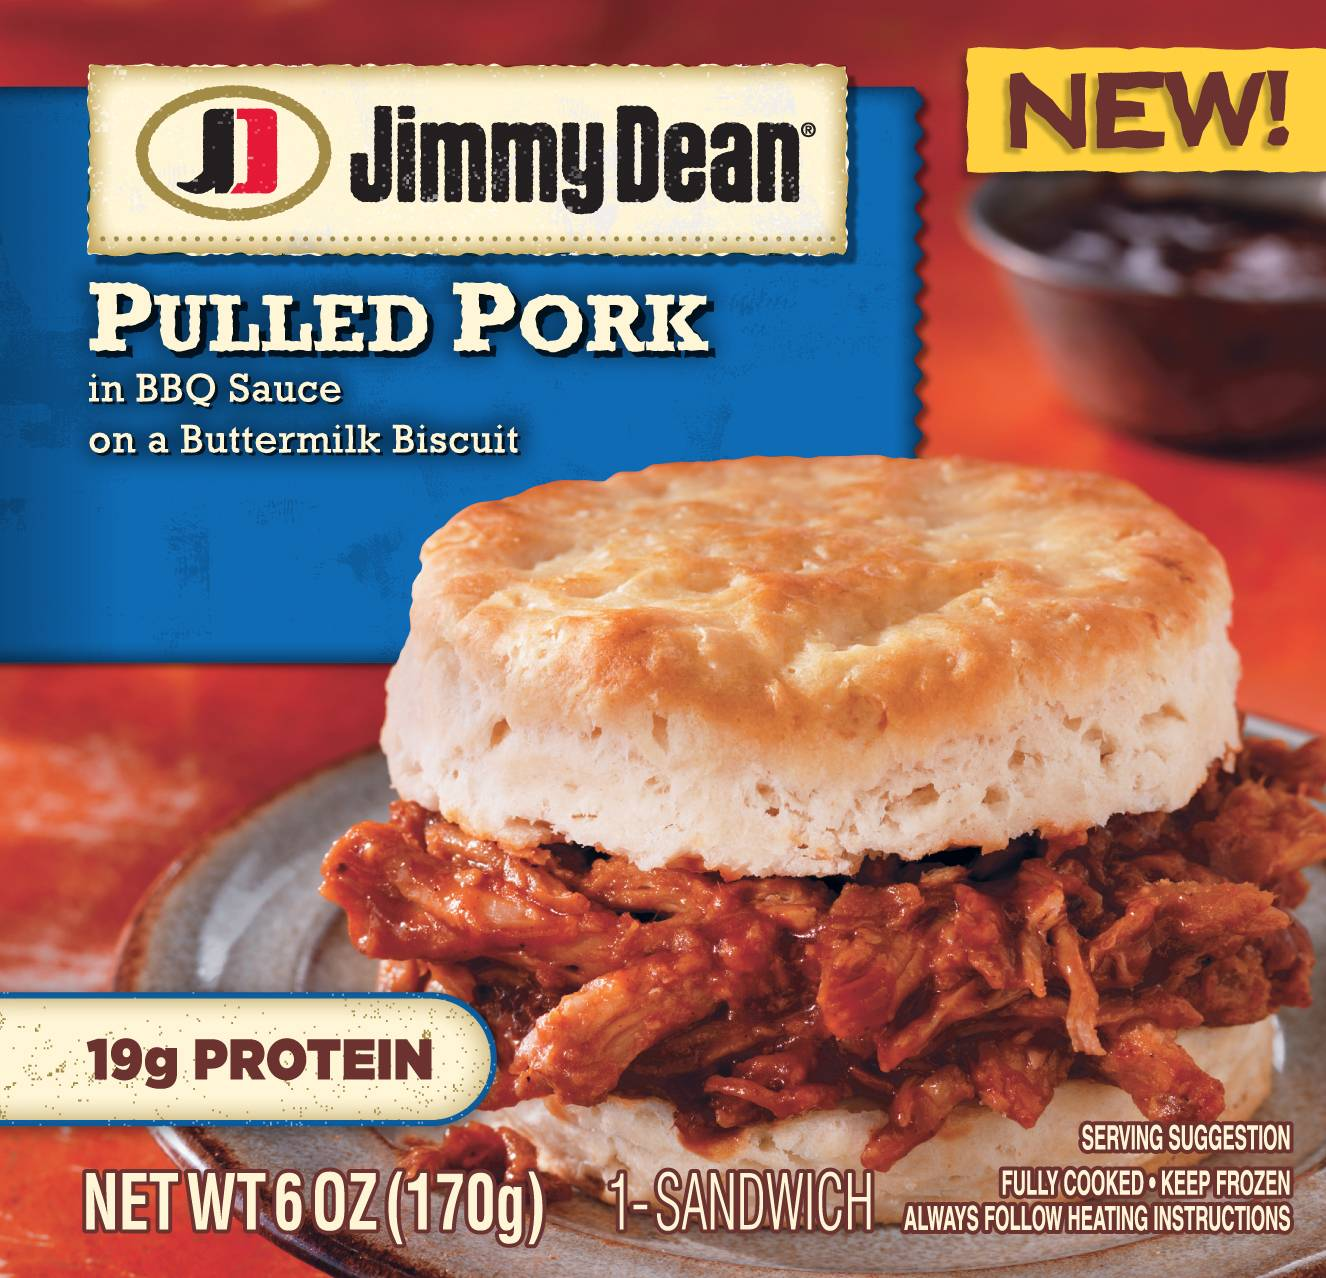 A Jimmy Dean Pulled Pork sandwich. Jimmy Dean, the breakfast sausage brand started by the late country singer of the same name, is hoping its new bowls and sandwiches can lure eaters at other meals.